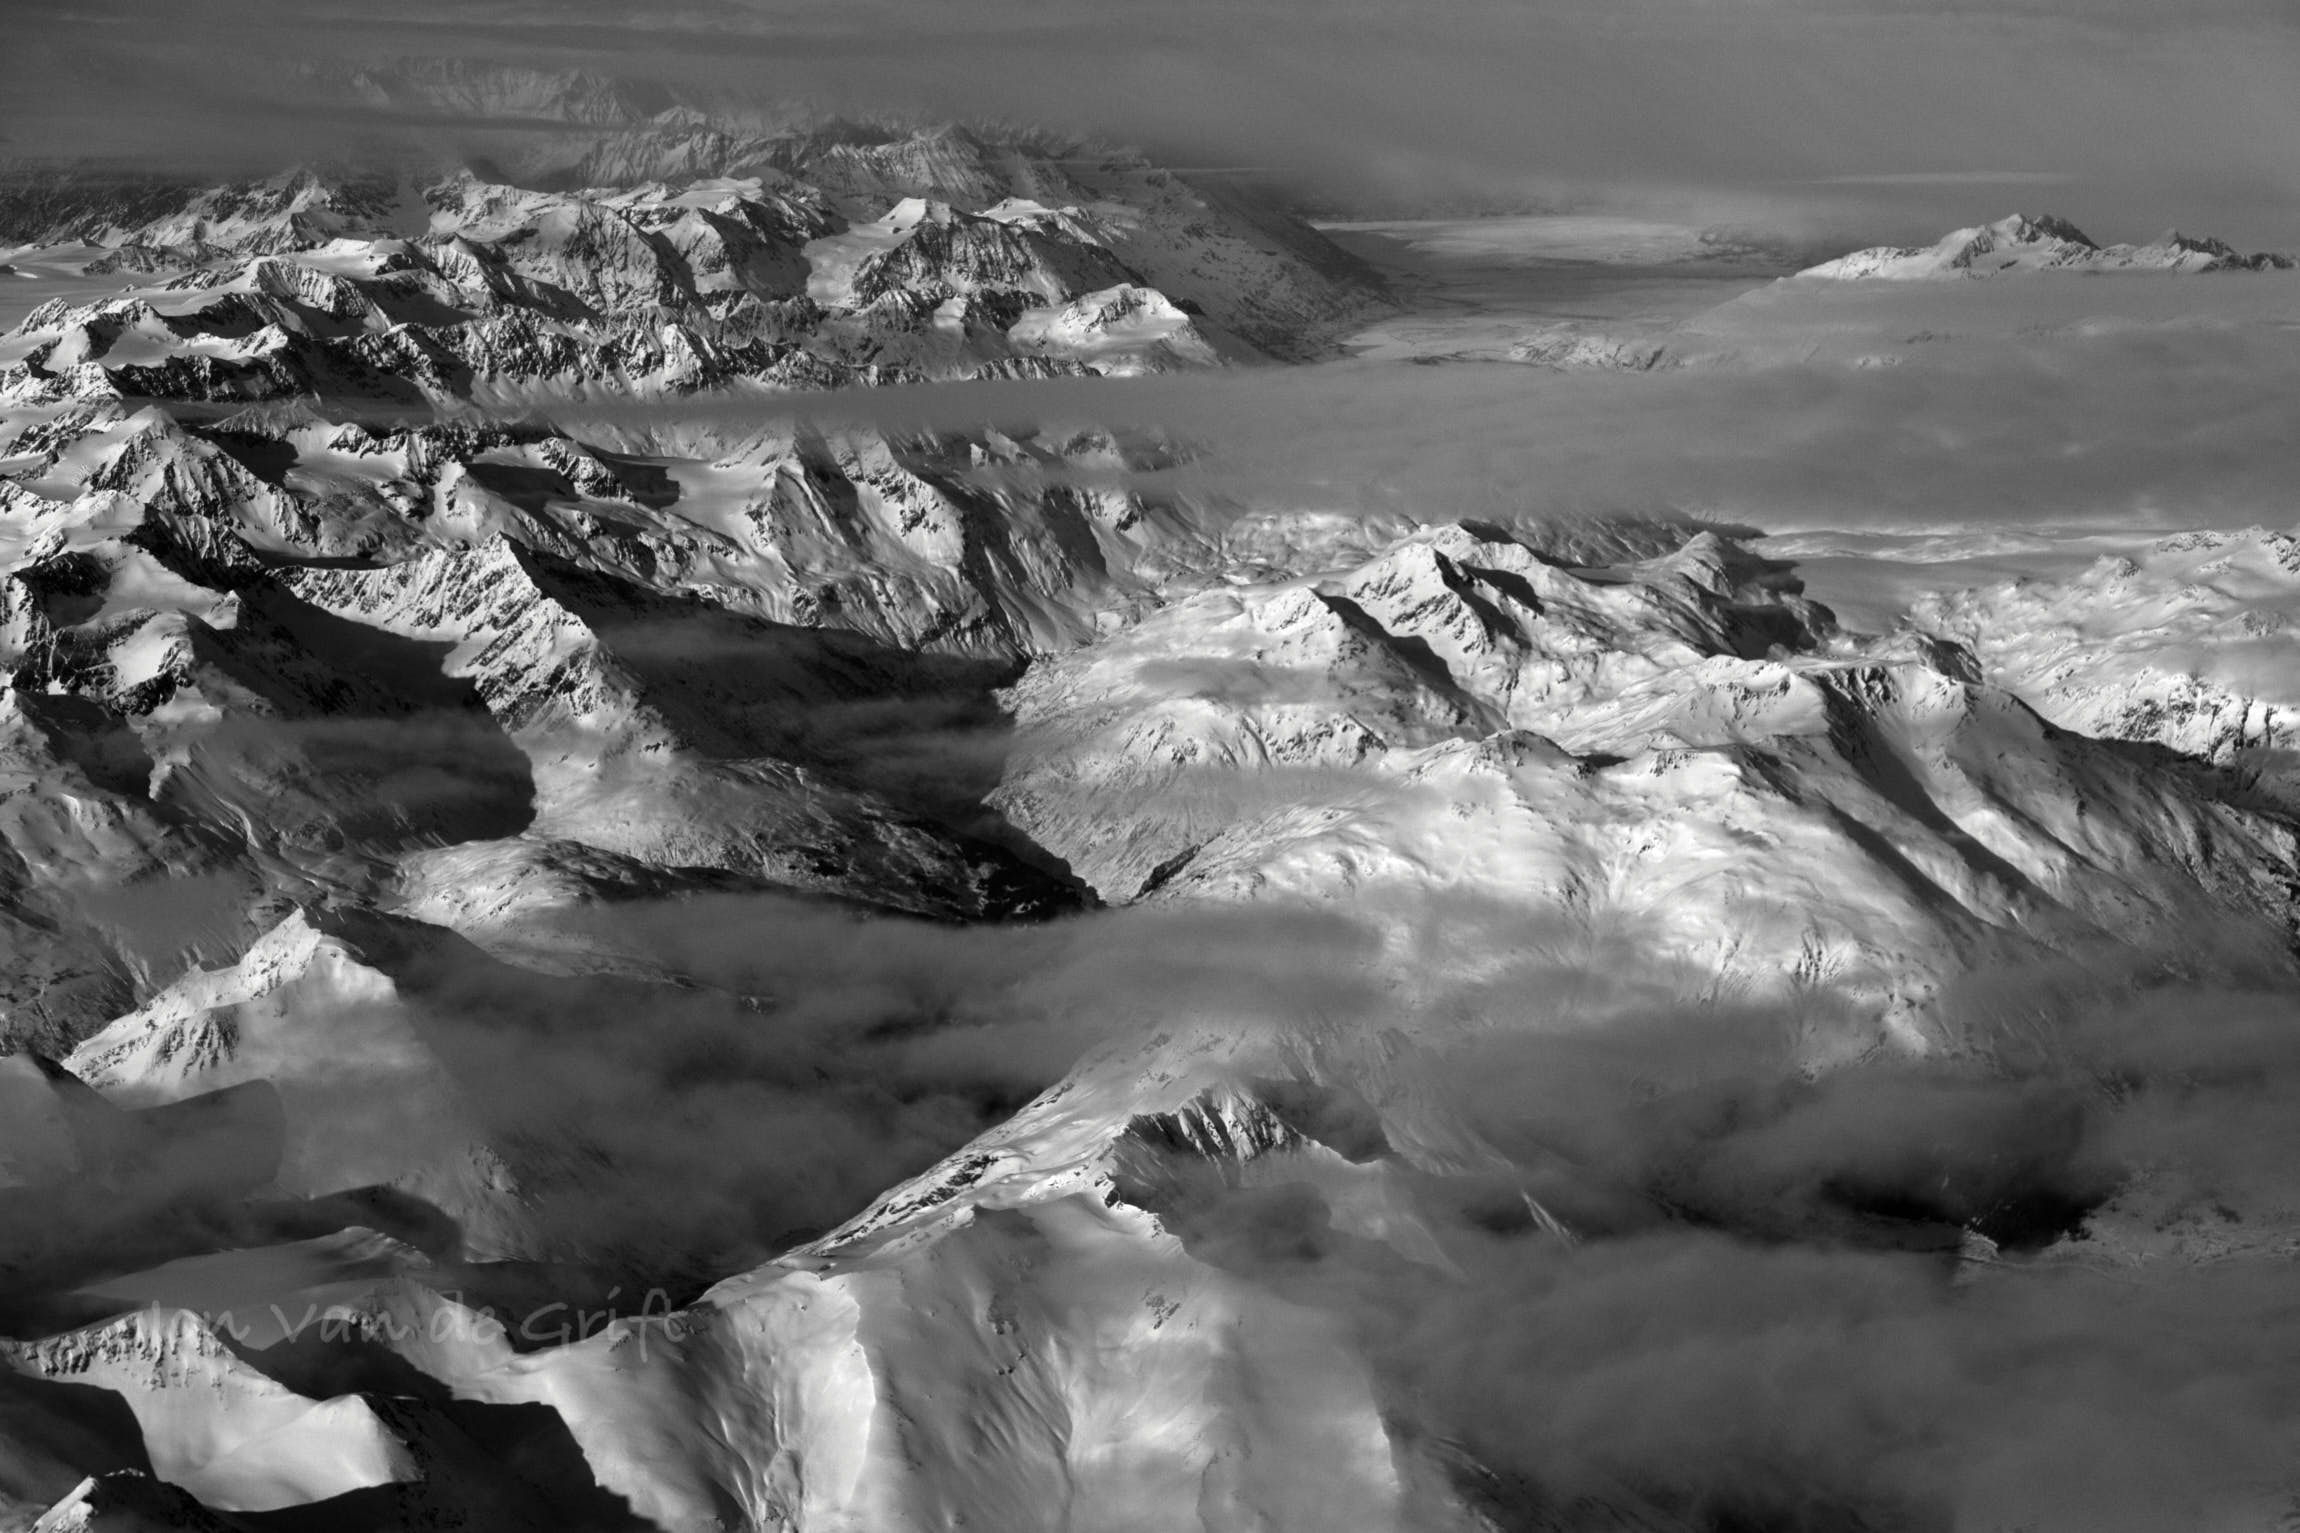 Black and white aerial photograph  of a breaking winter storm over snow covered mountains.